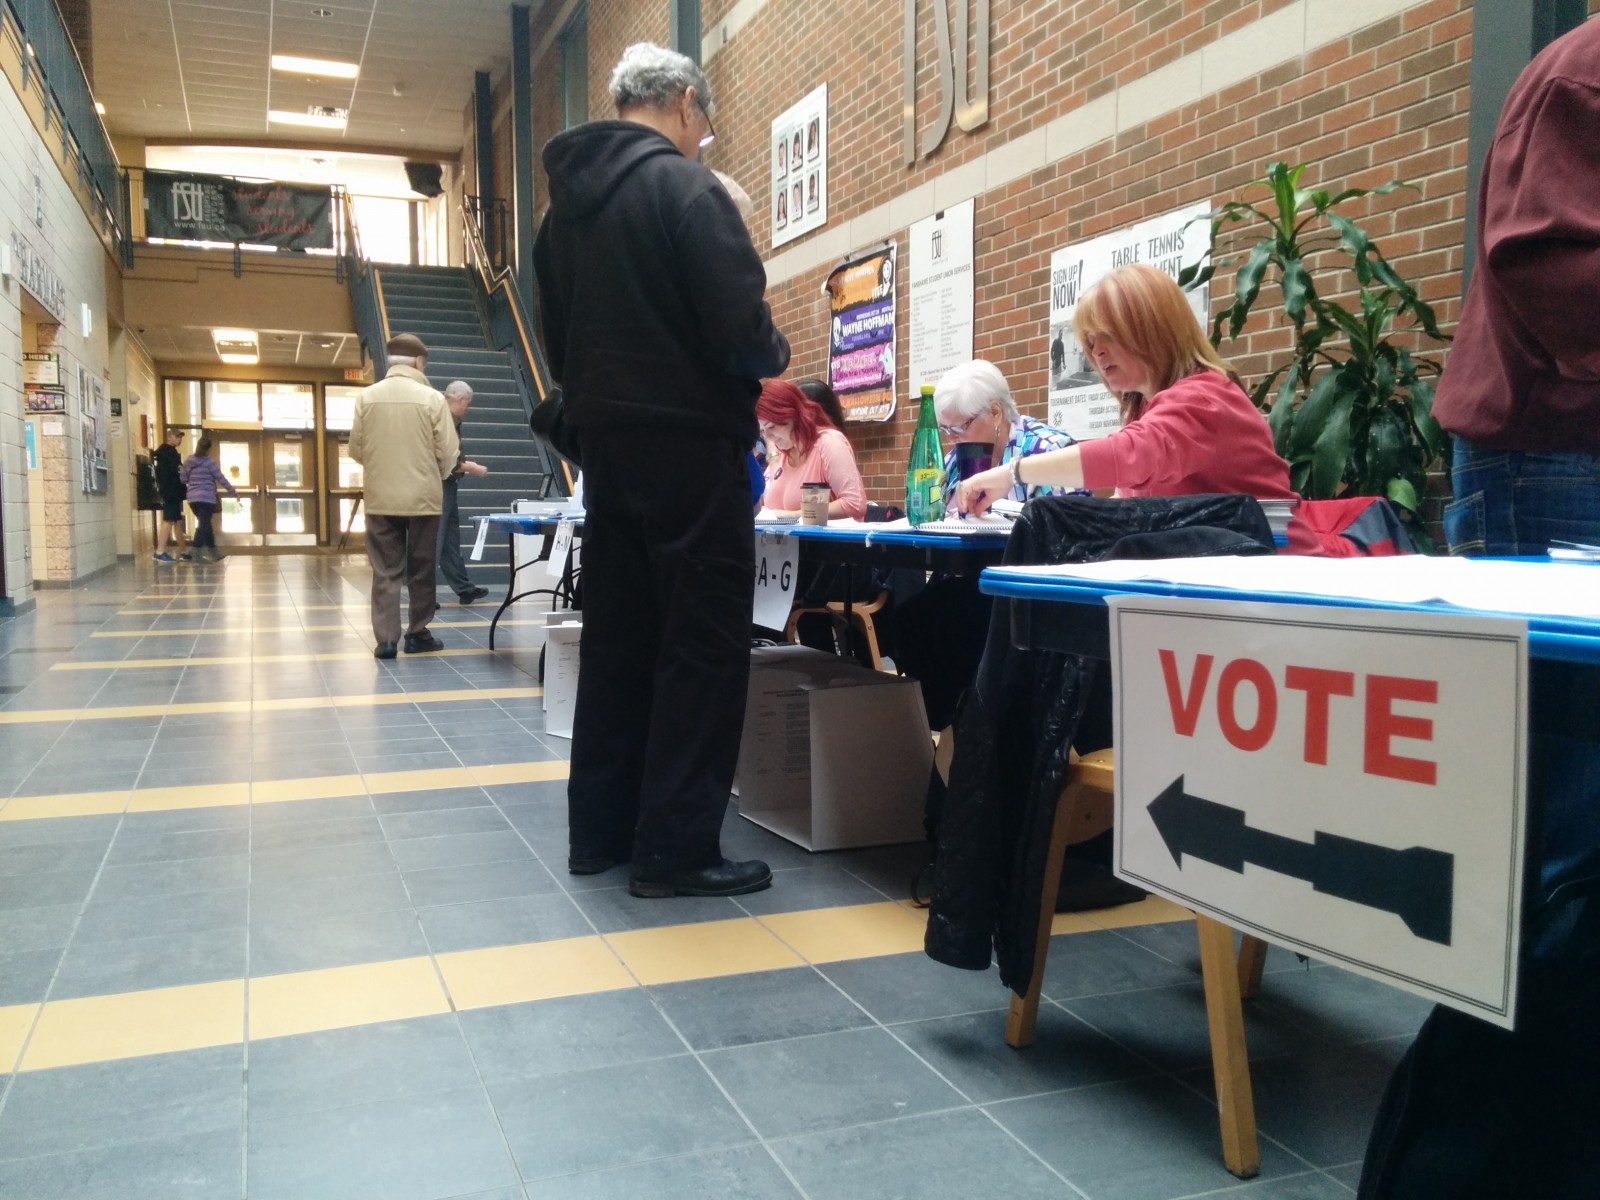 Fanshawe College polling station open for business